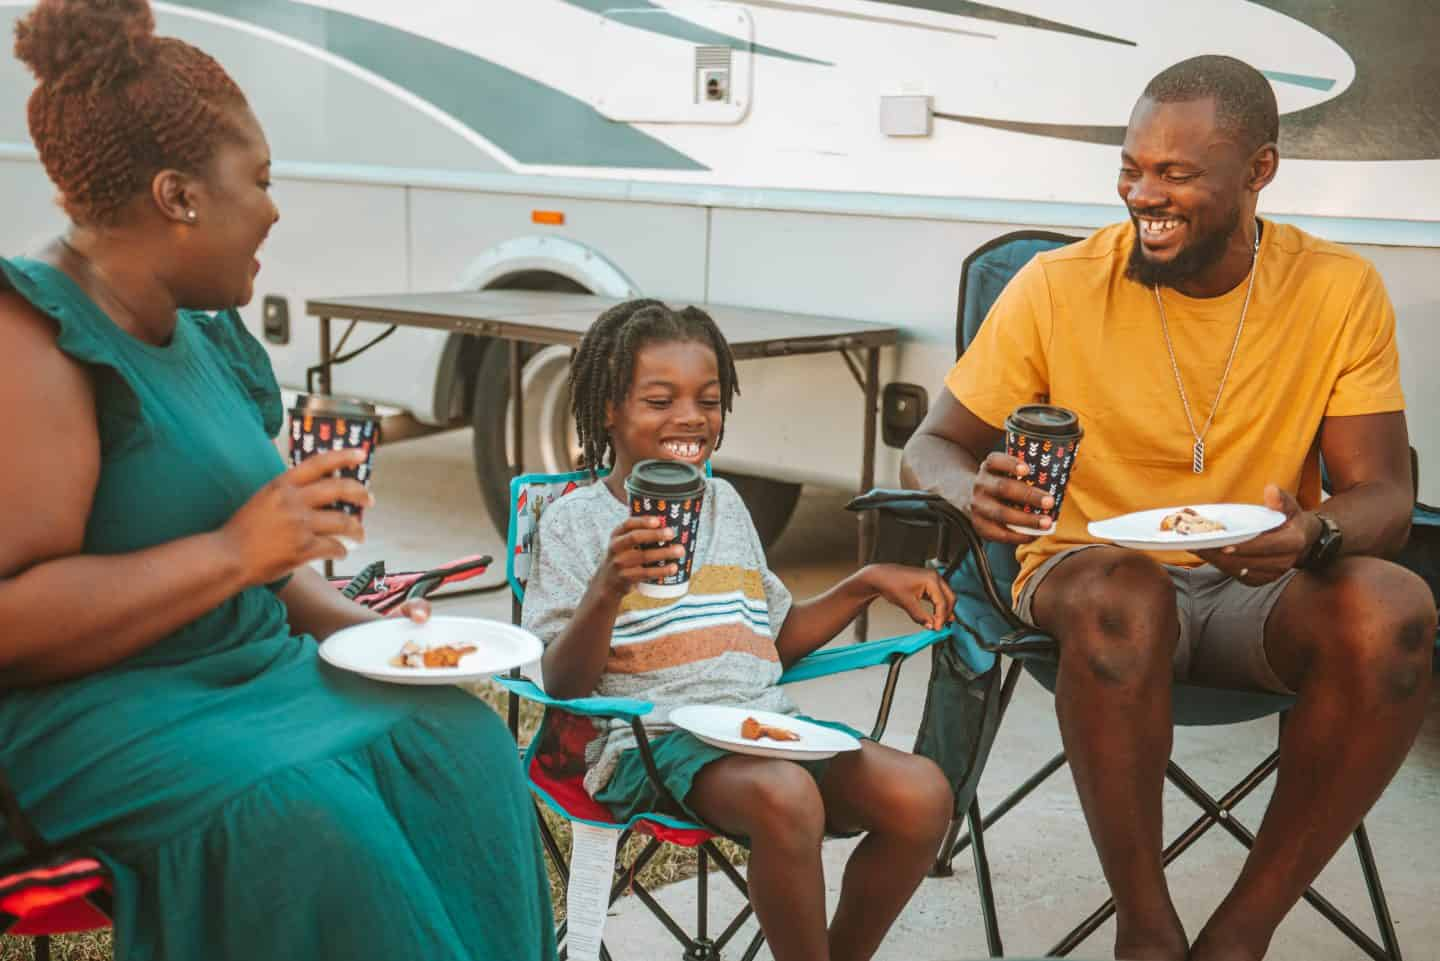 Easy Ways to Spend More Time with Your Family